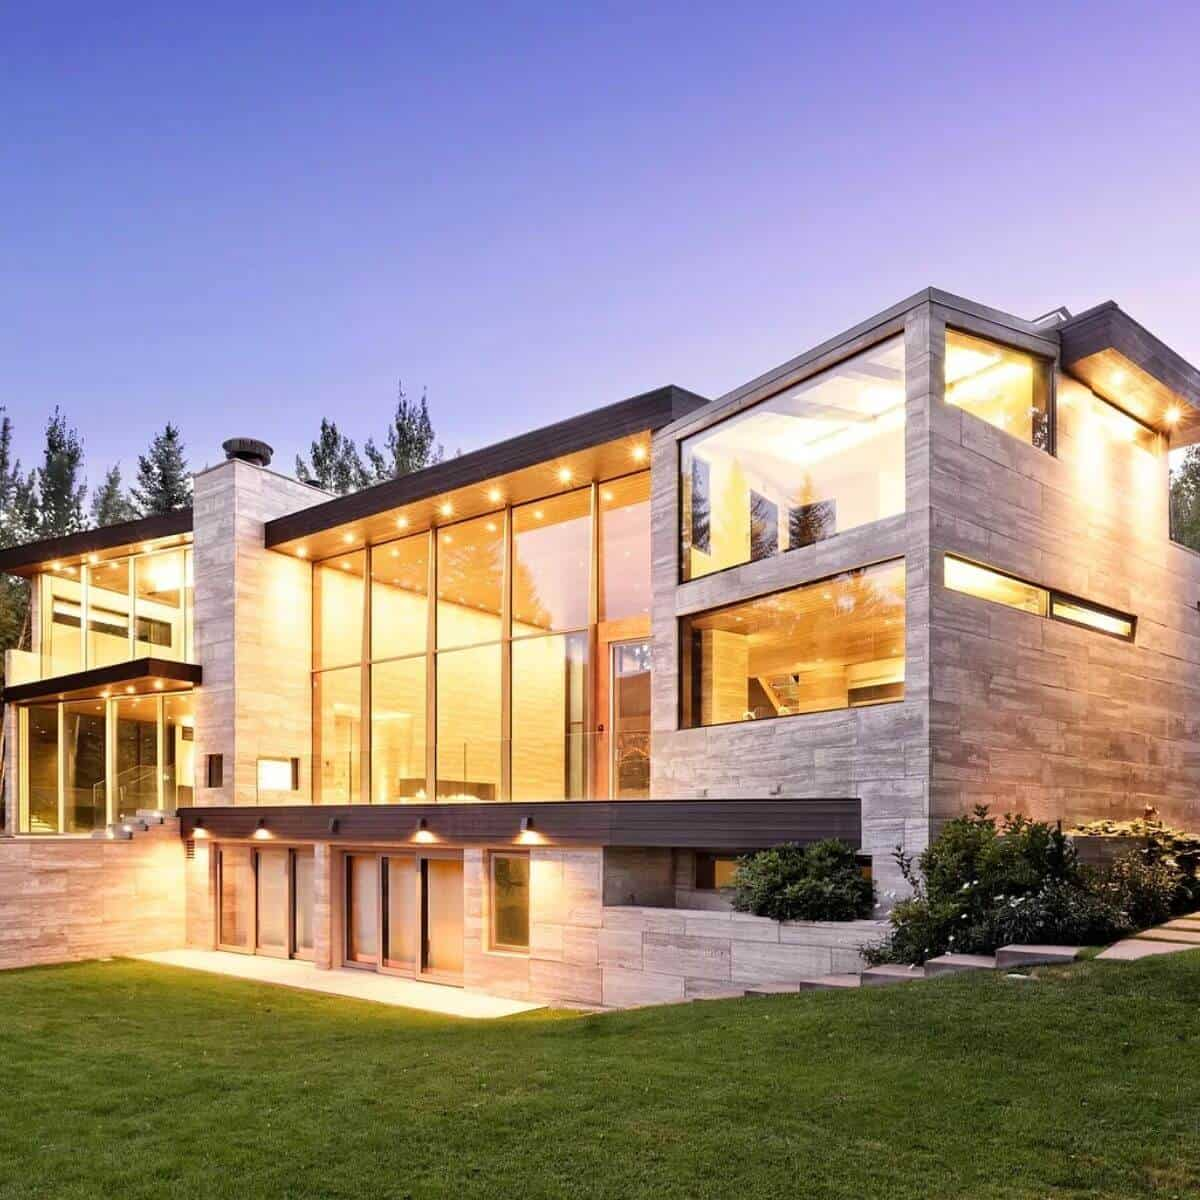 Modern 3-story mansion in Aspen with grass in front of it.